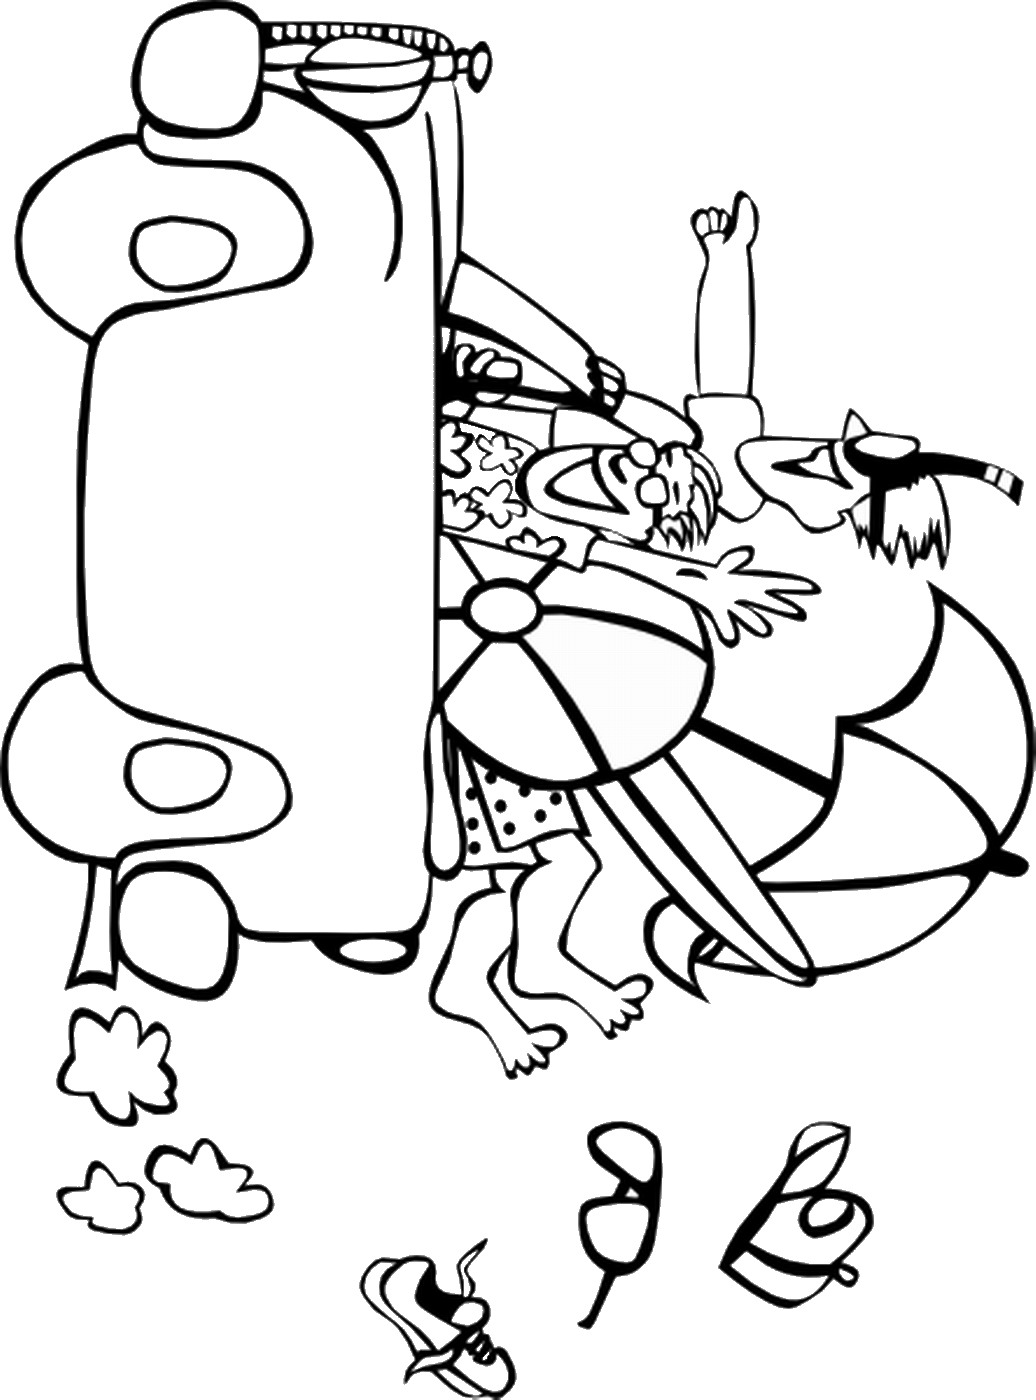 summer coloring pages free printable summer coloring page ausdruckbare pages summer coloring